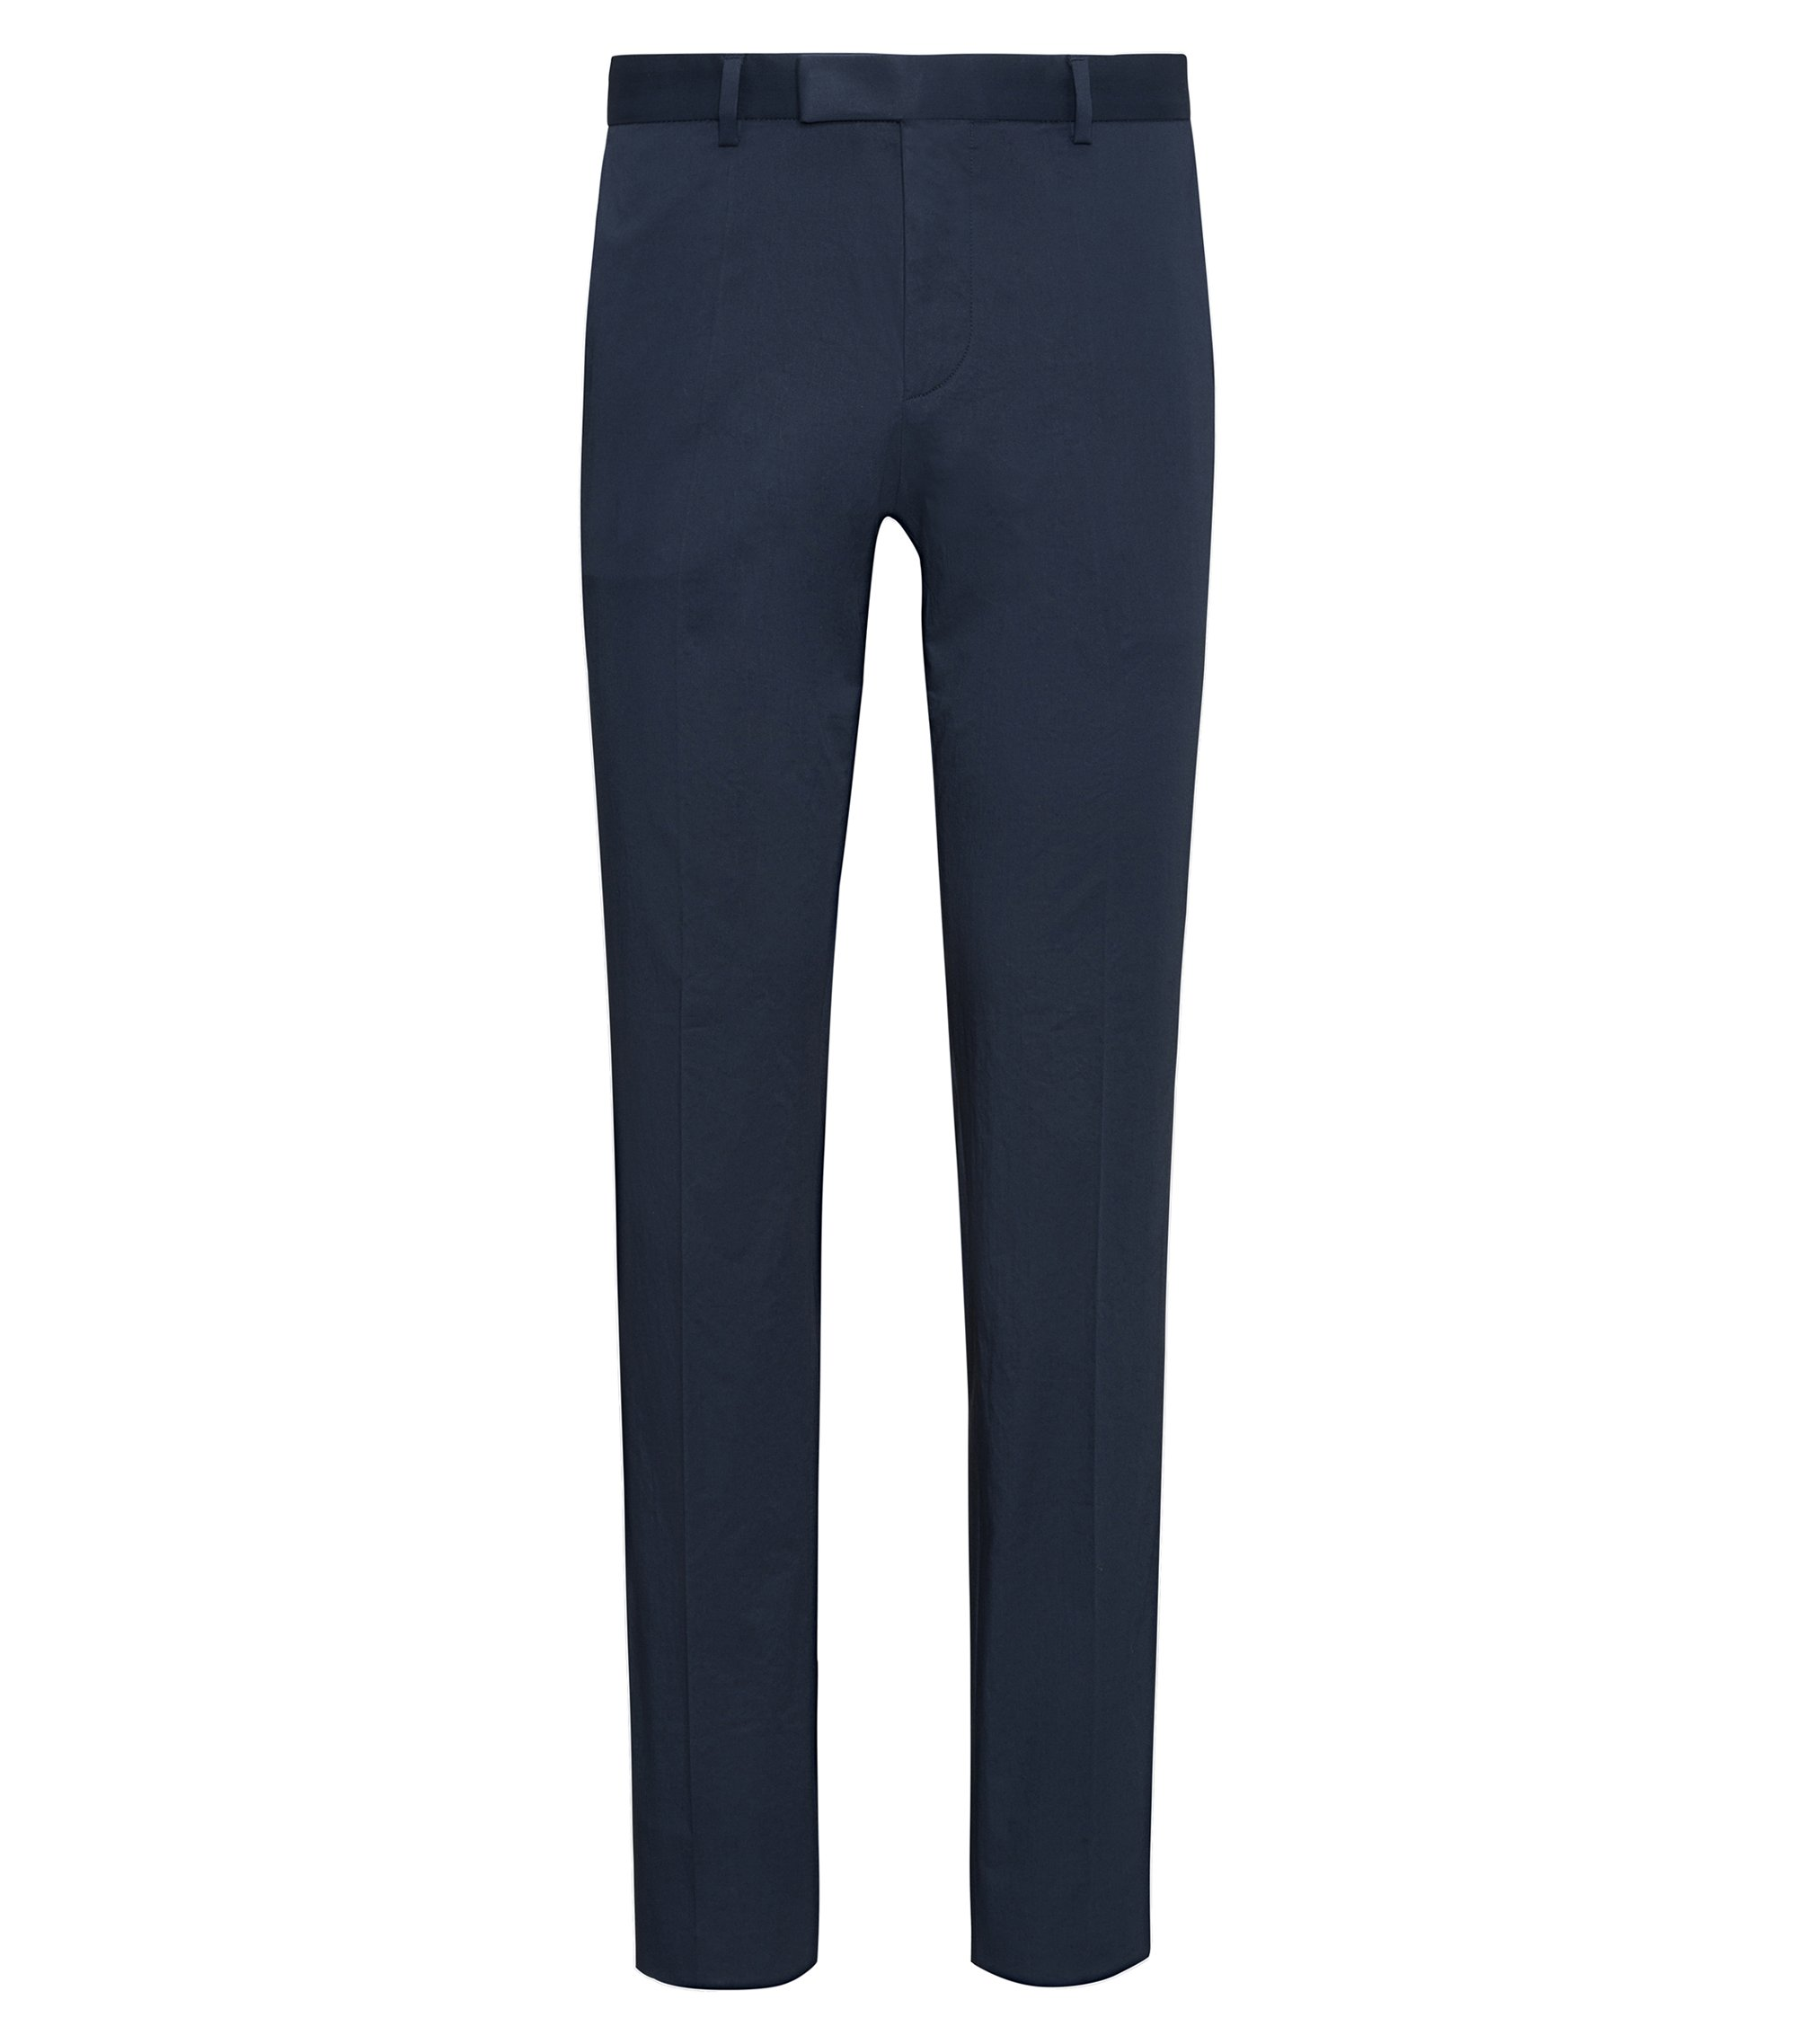 Pantalon Extra Slim Fit en coton Oxford stretch, Bleu foncé